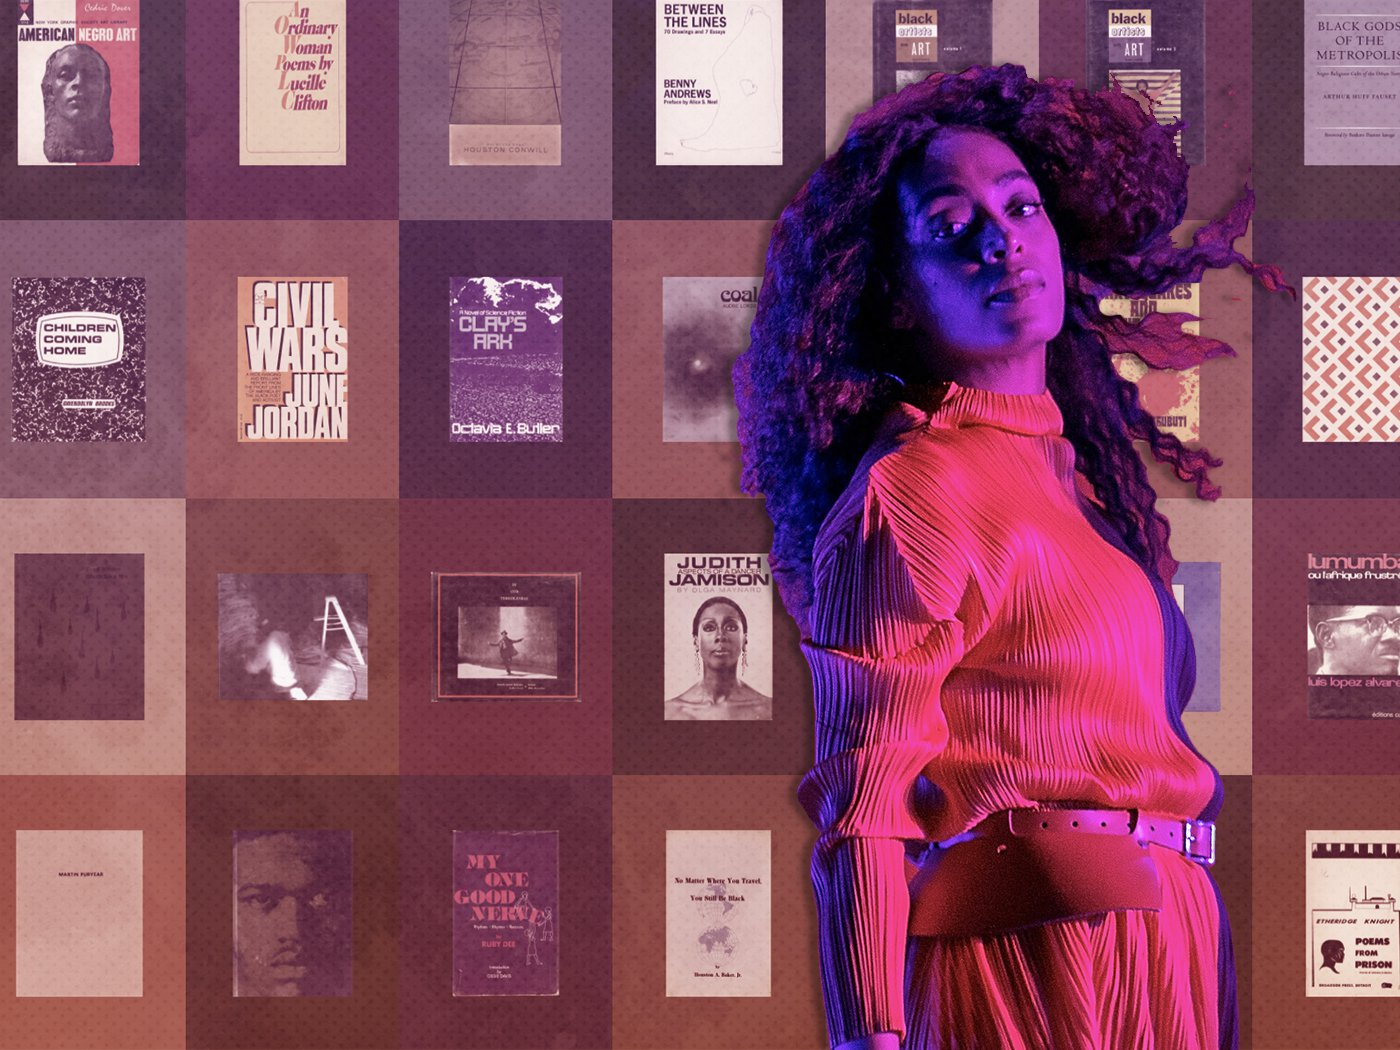 Singer and Artist Solange Debuts Free Library of Rare Books by Black Authors